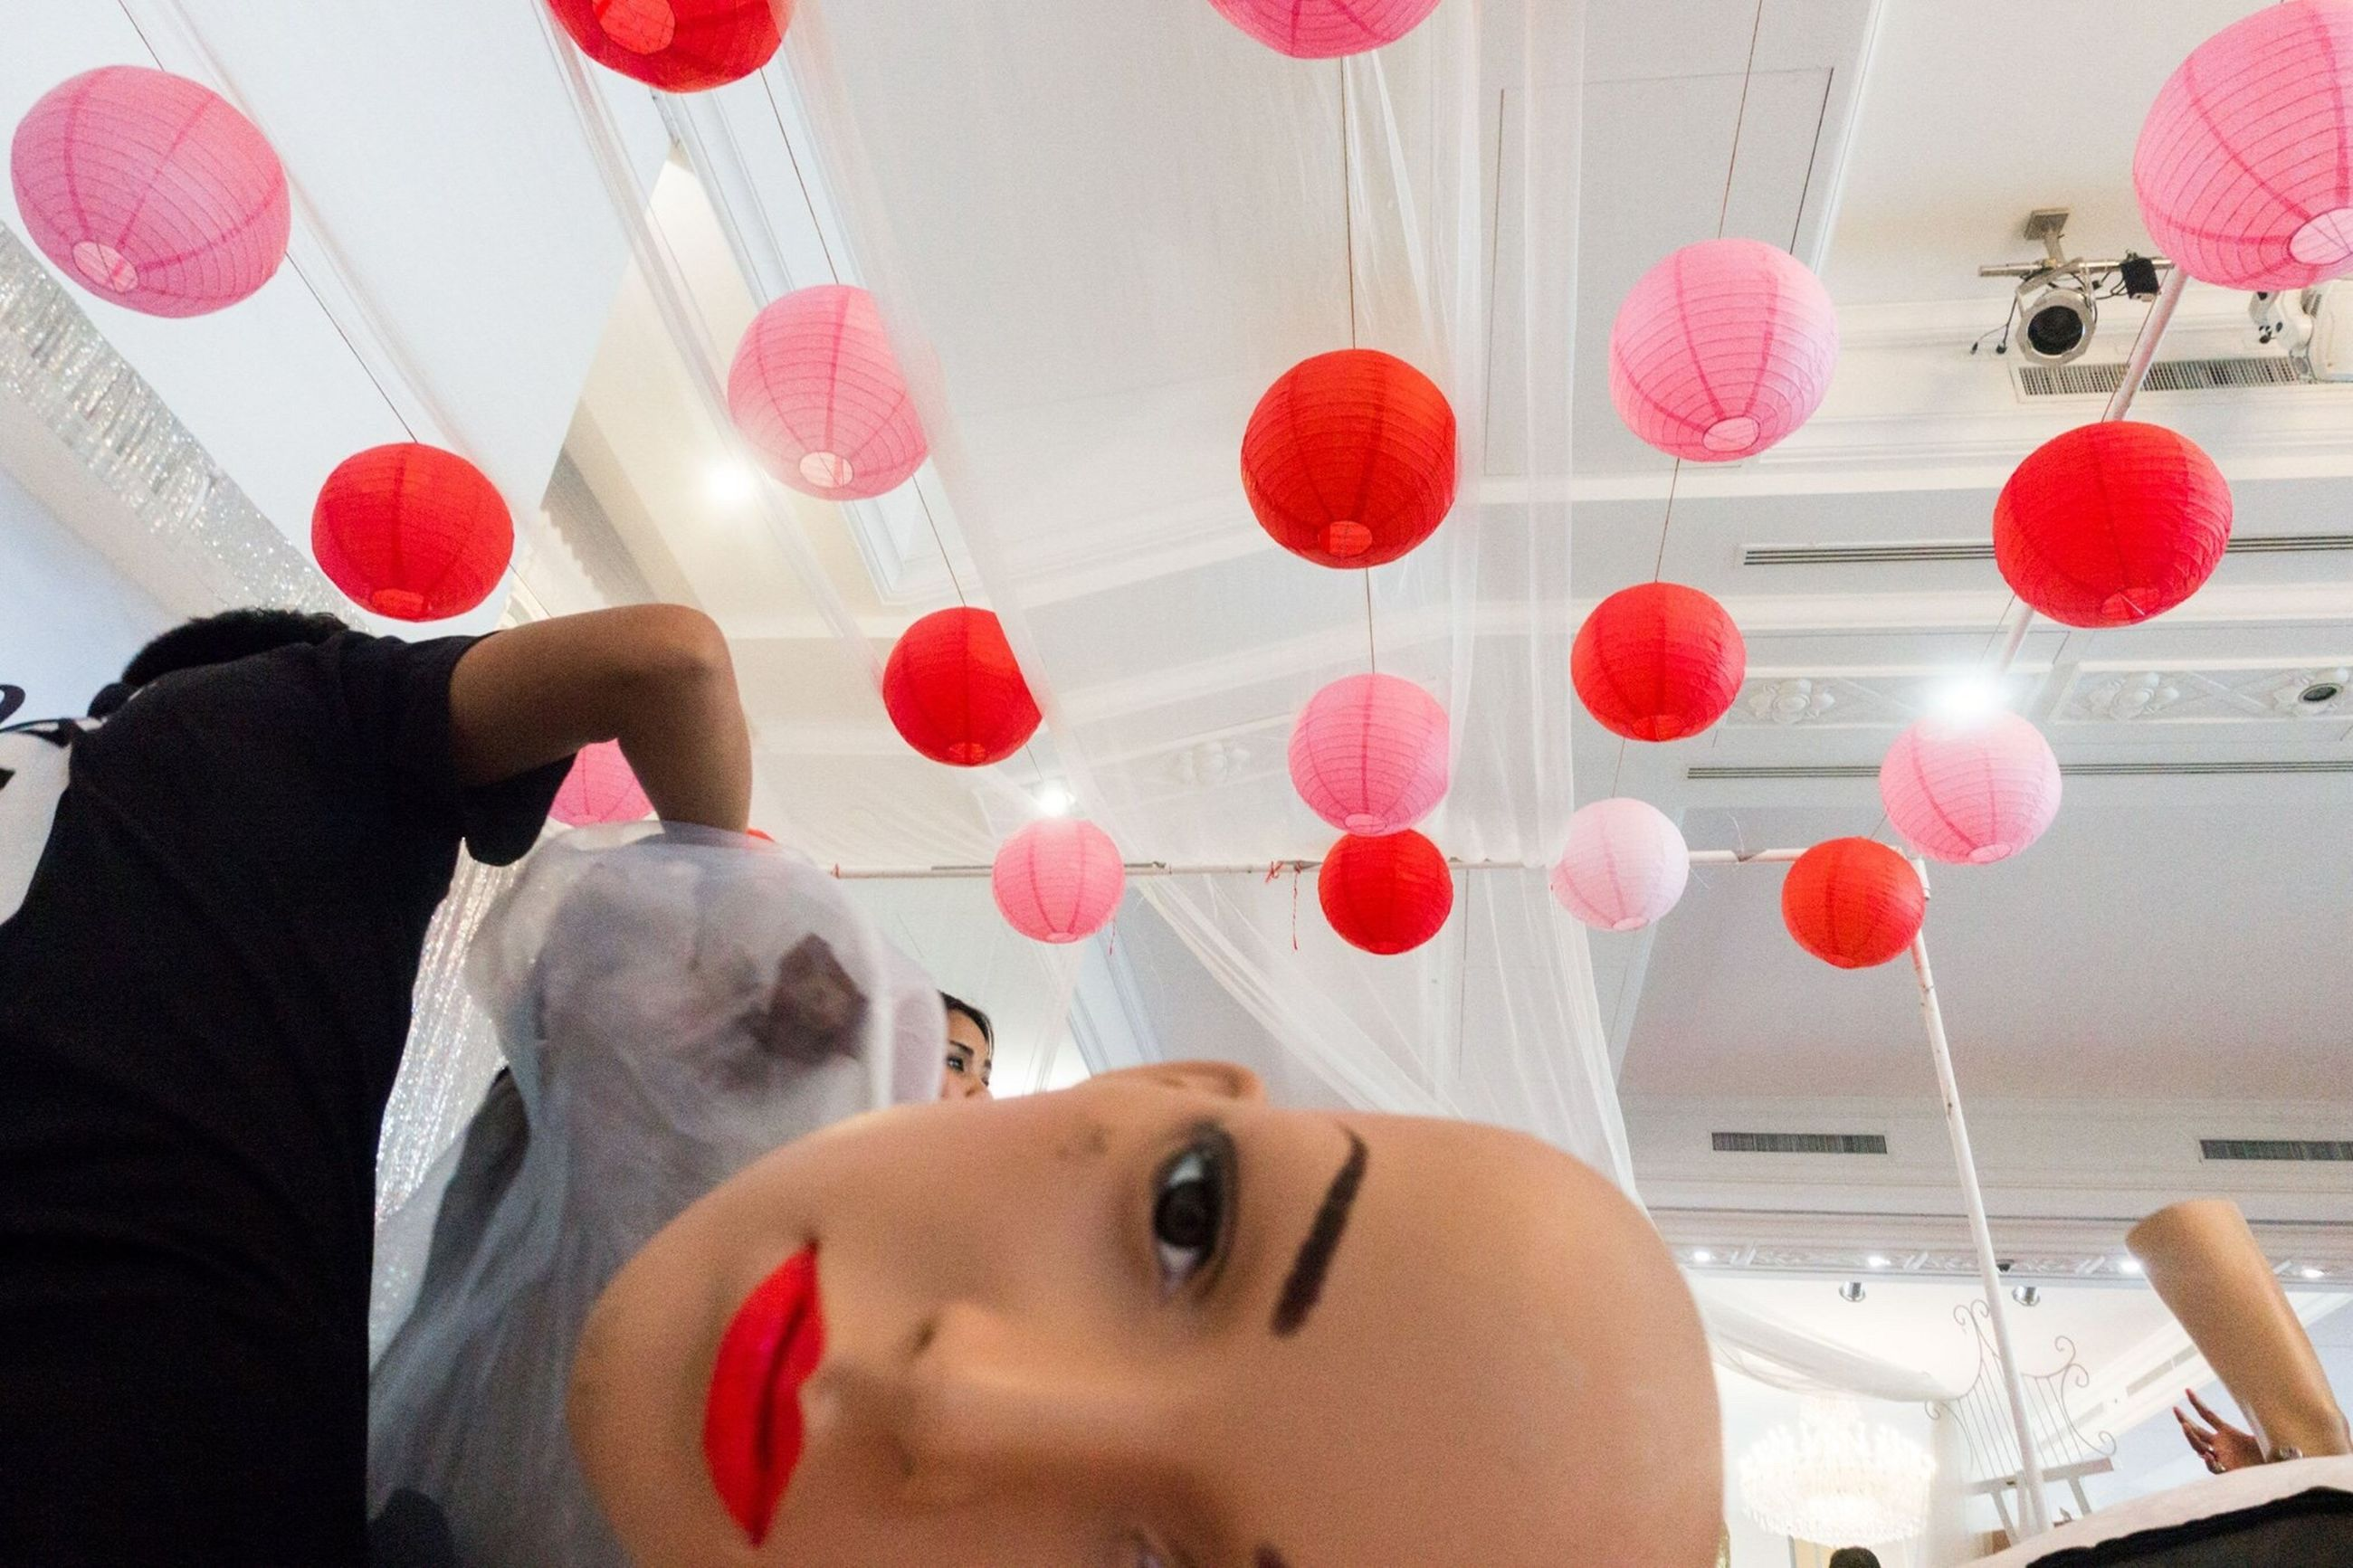 indoors, red, glass - material, window, transparent, decoration, home interior, close-up, pink color, flower, hanging, wall - building feature, reflection, table, multi colored, no people, still life, celebration, day, balloon